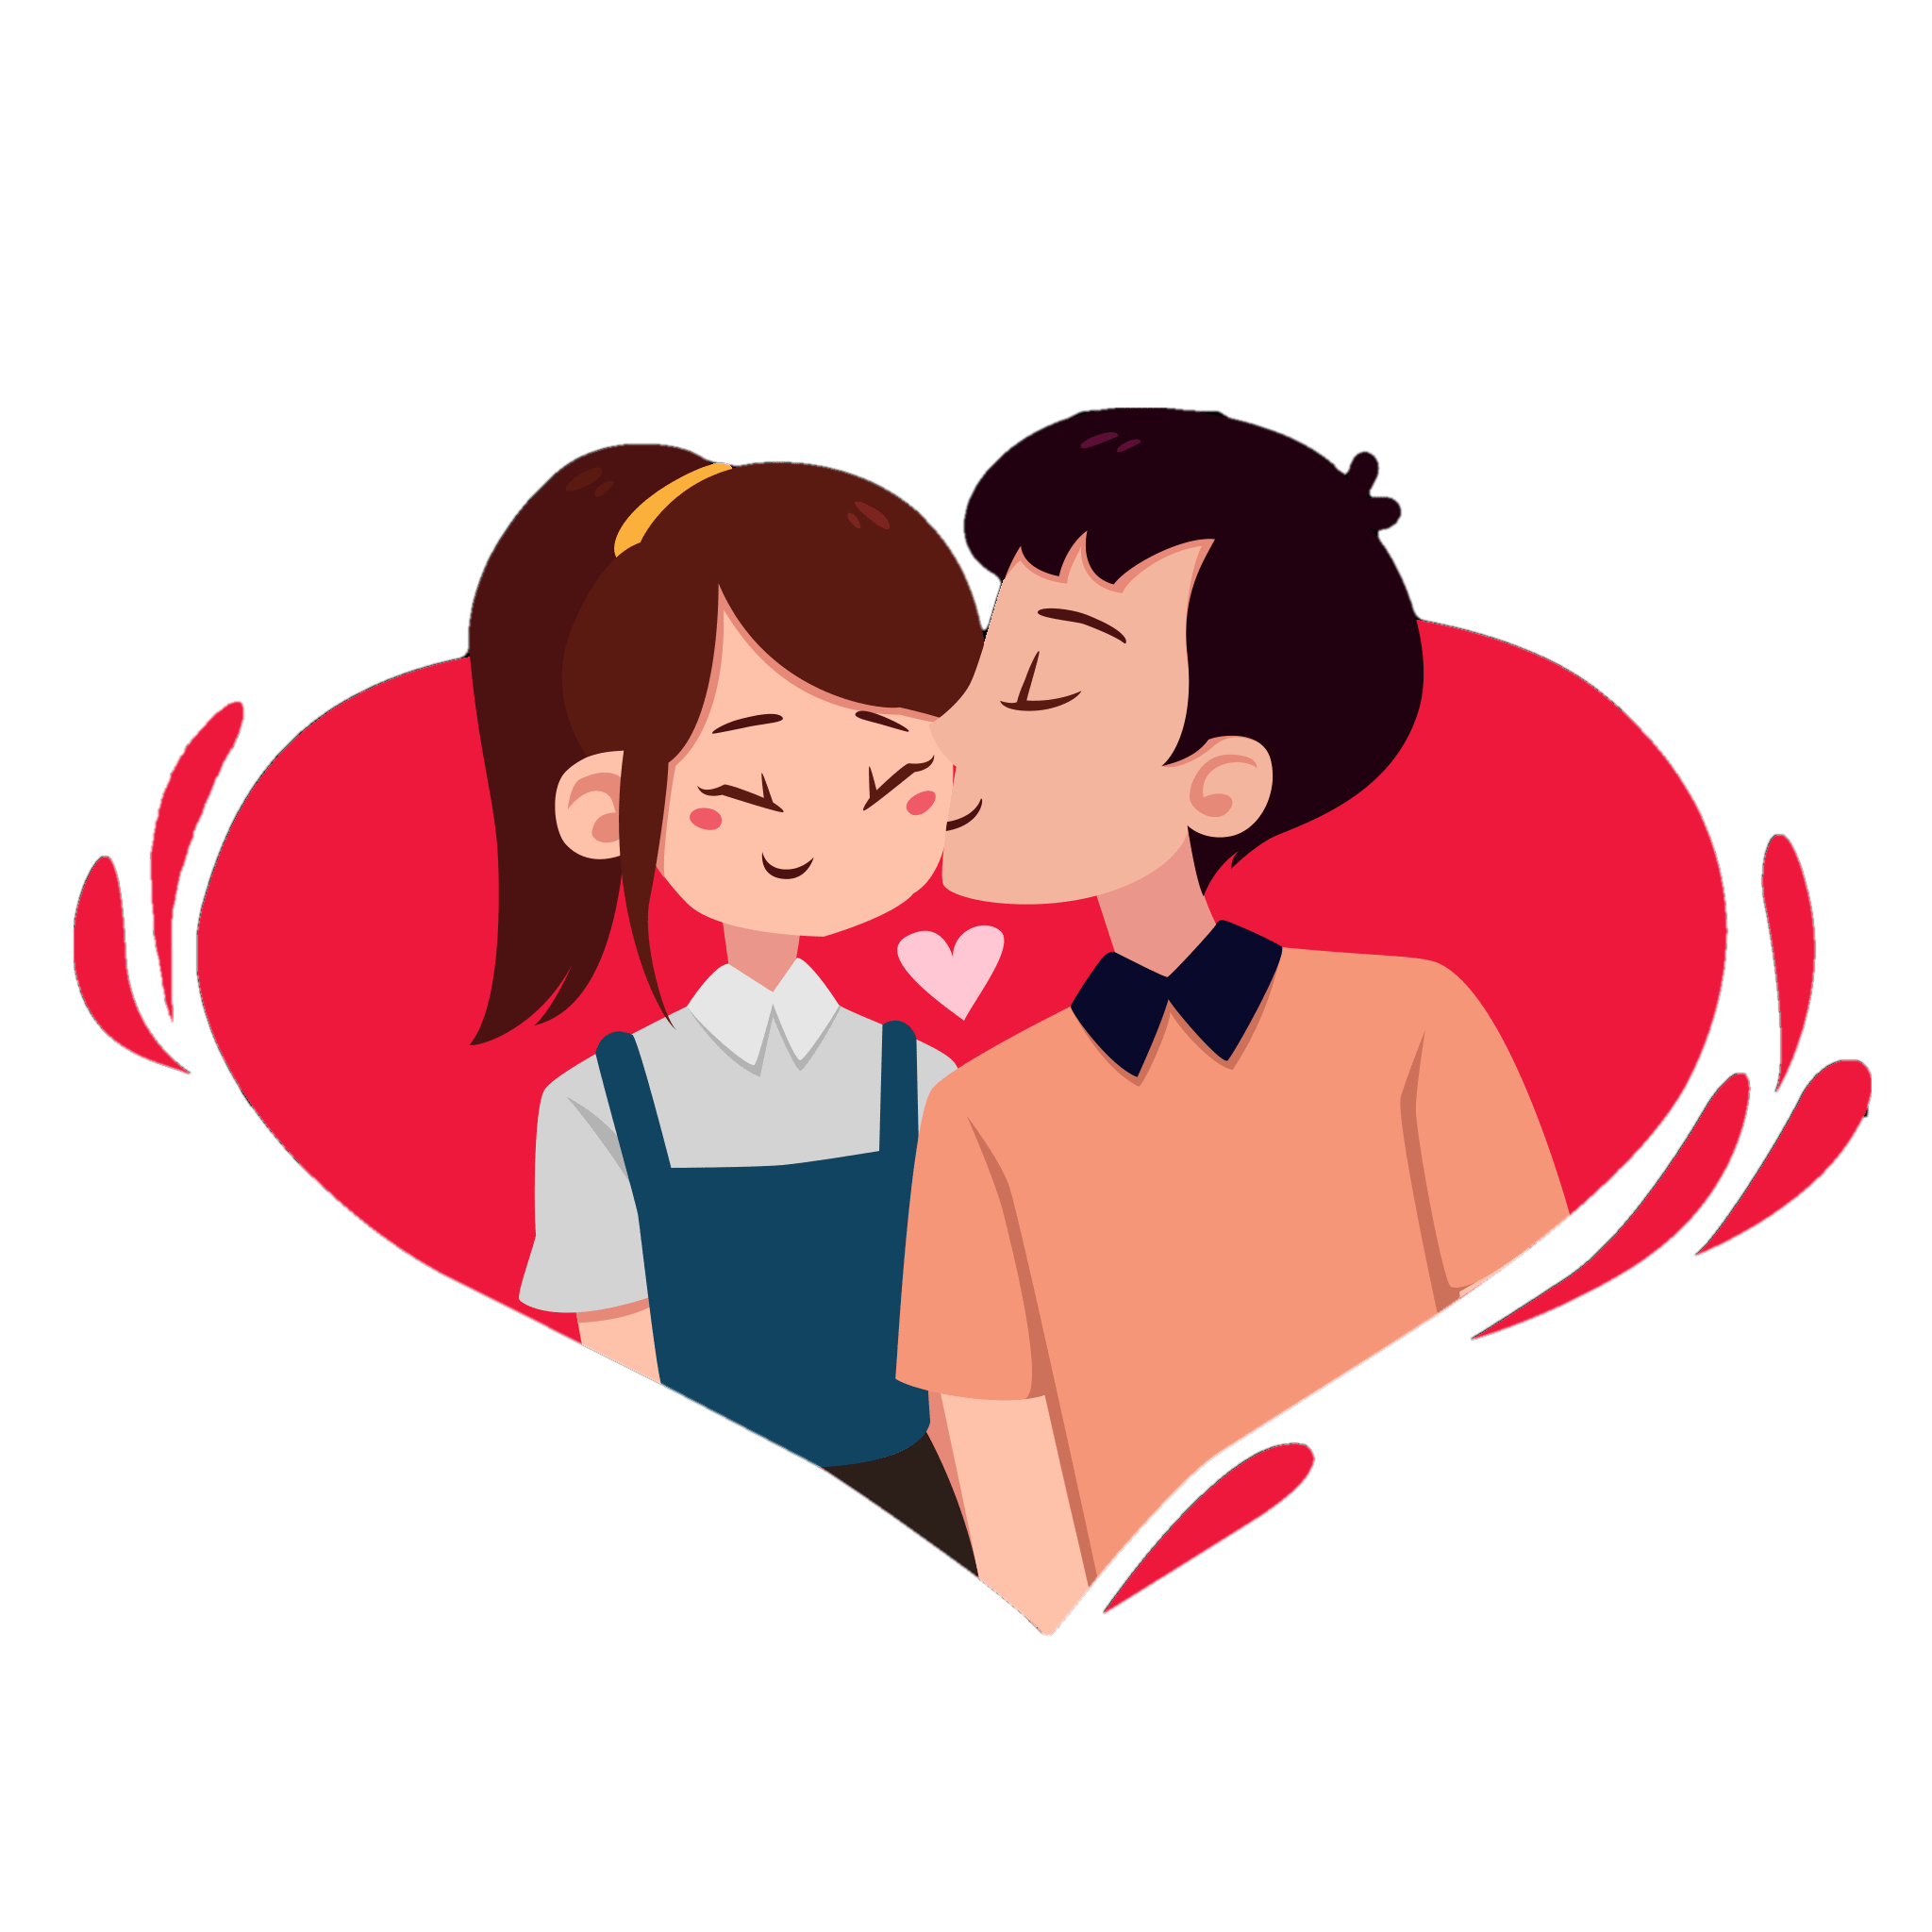 Love Couple Picture Cartoon In 2020 Cartoon Heart Pictures Of Love Couple Couple Cartoon